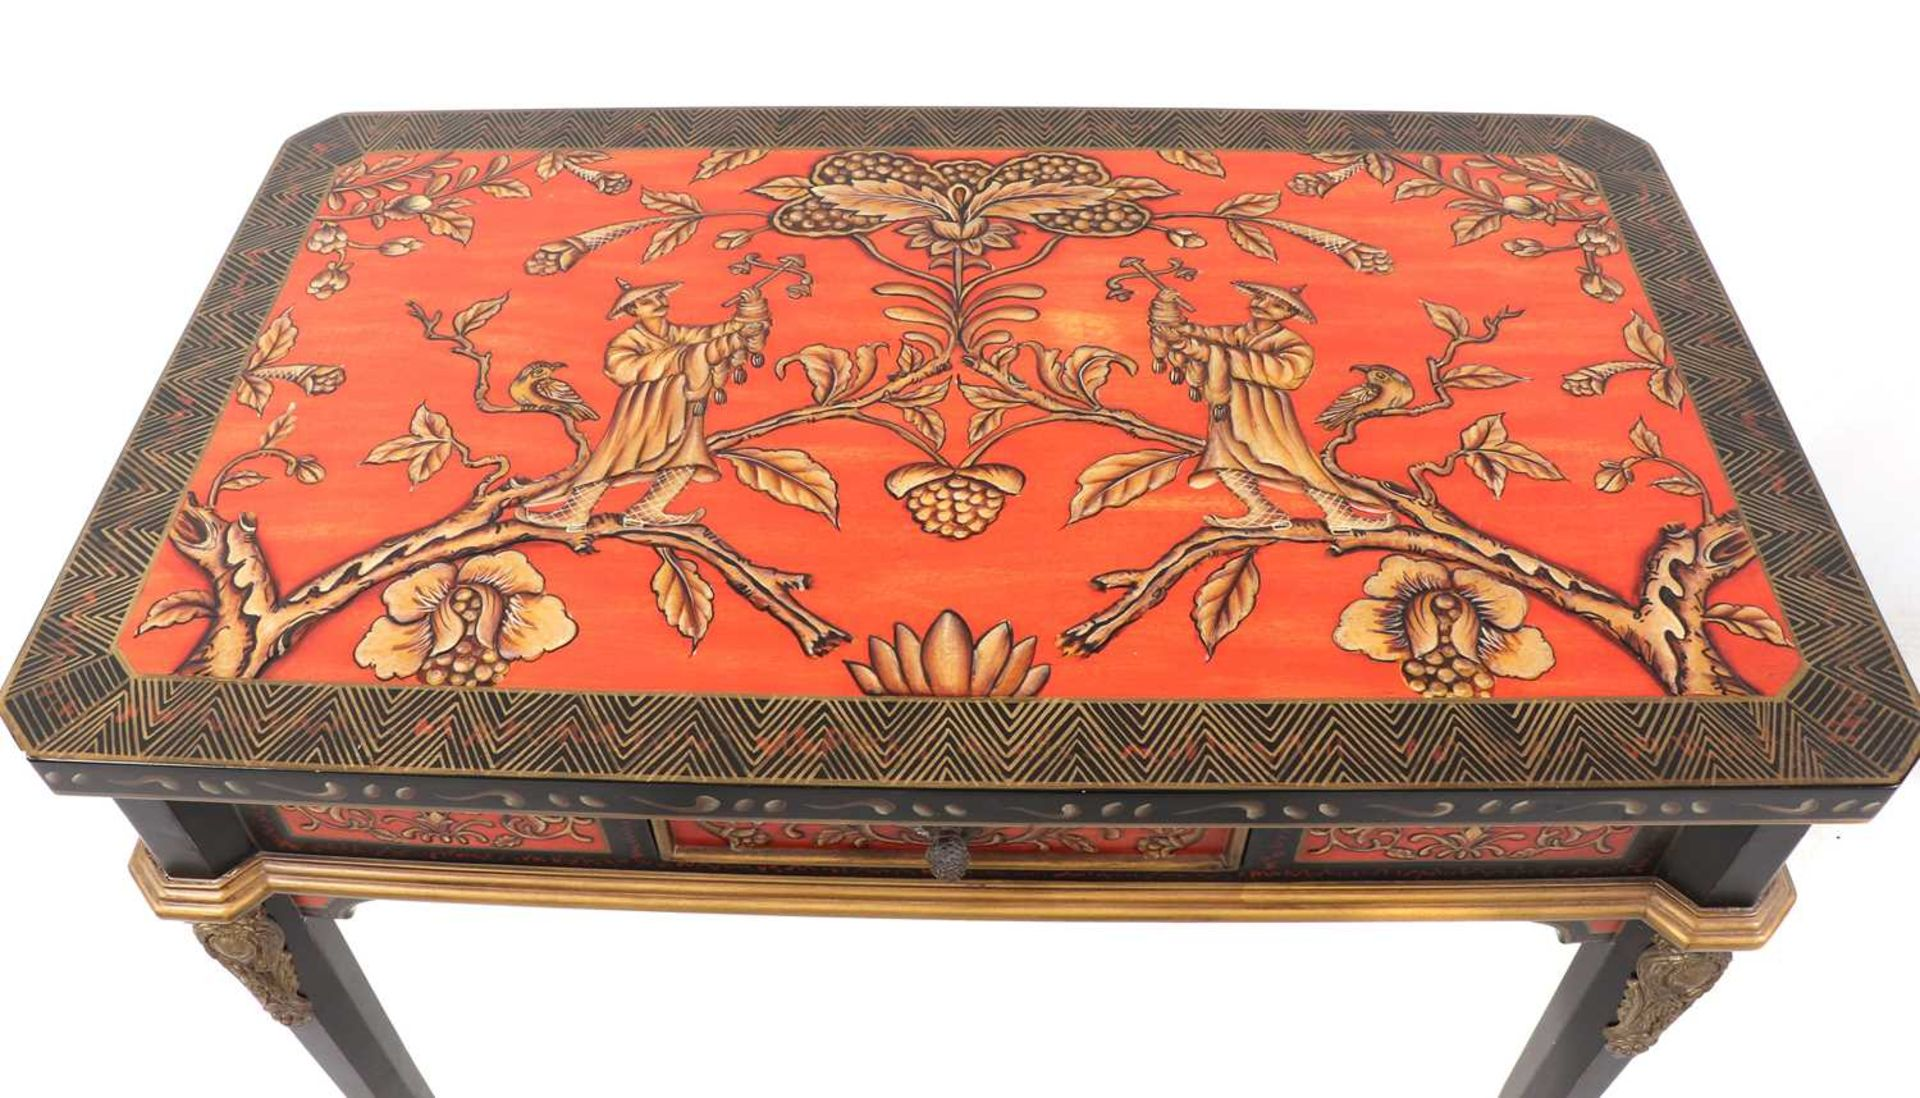 A pair of Napoleon III-style lacquered chinoiserie side tables, - Image 6 of 10